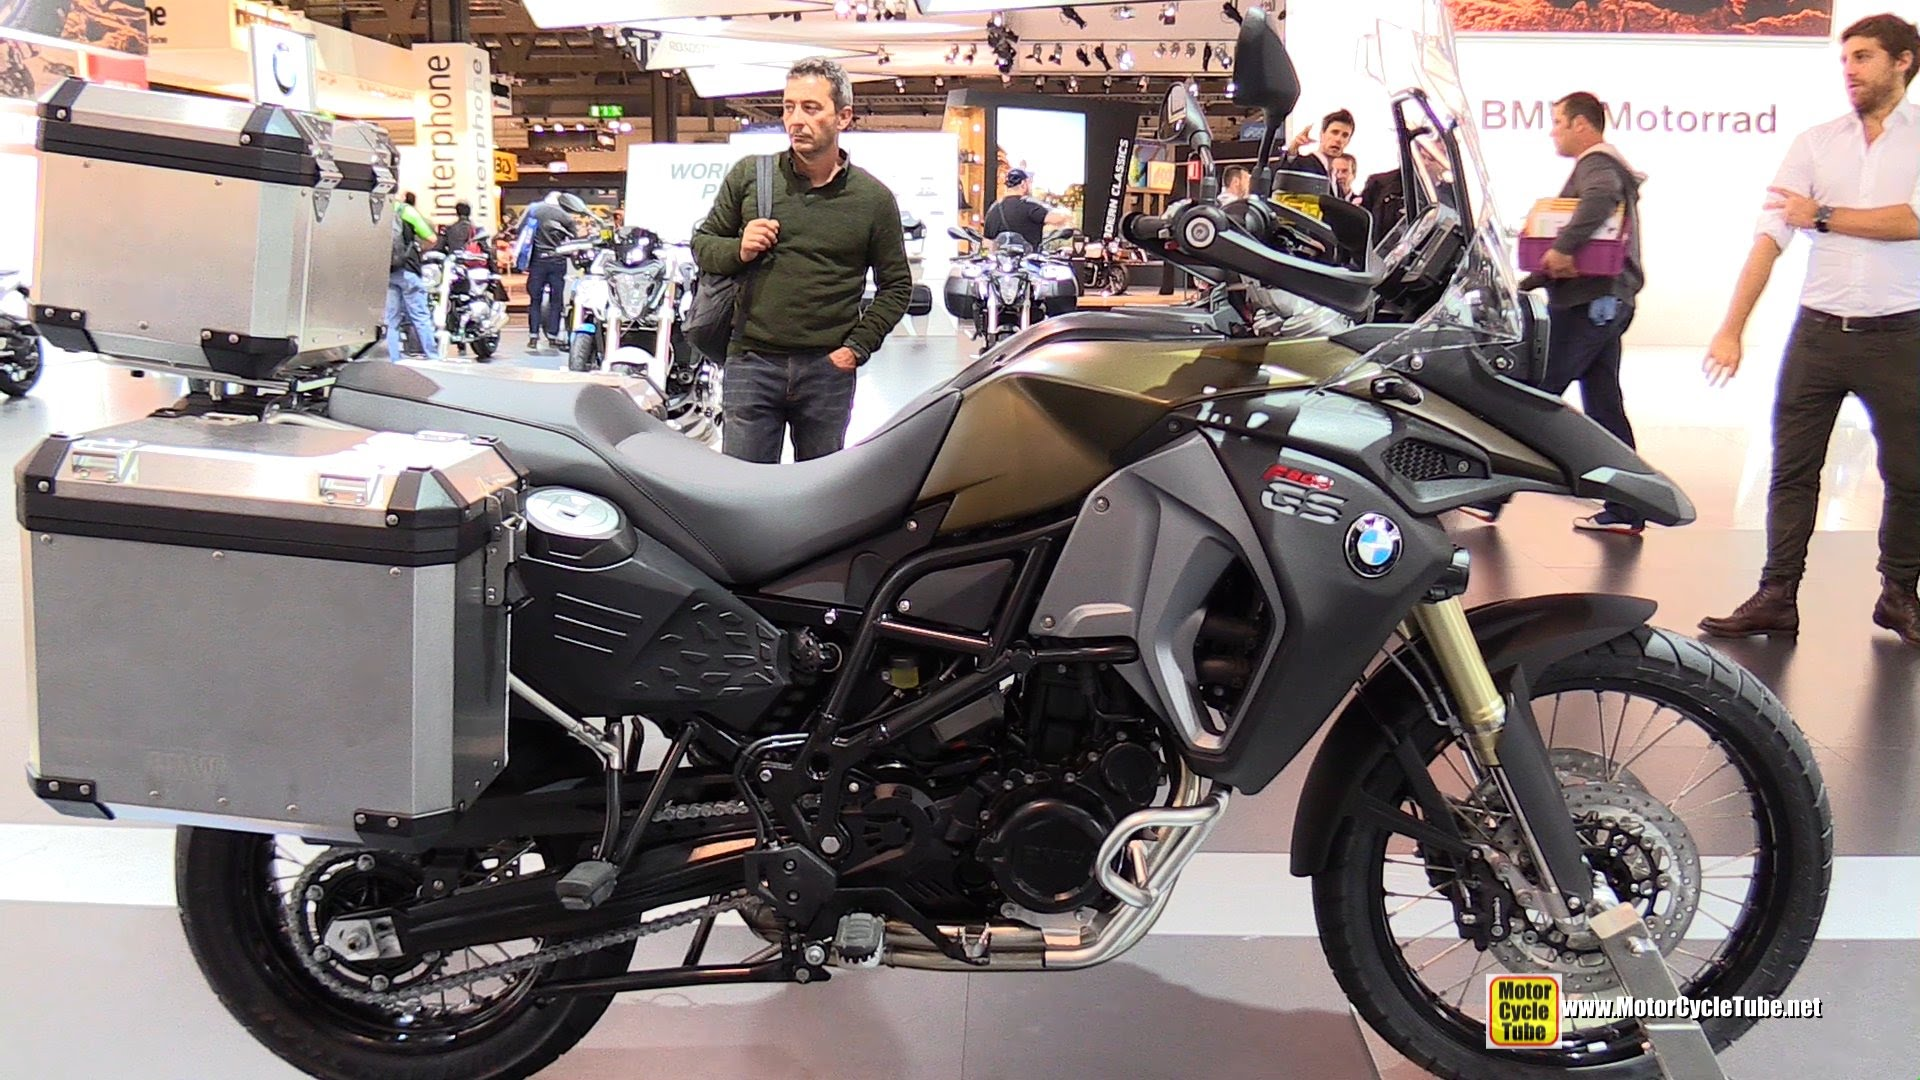 BMW F800GS Adventure 2014 images #9080